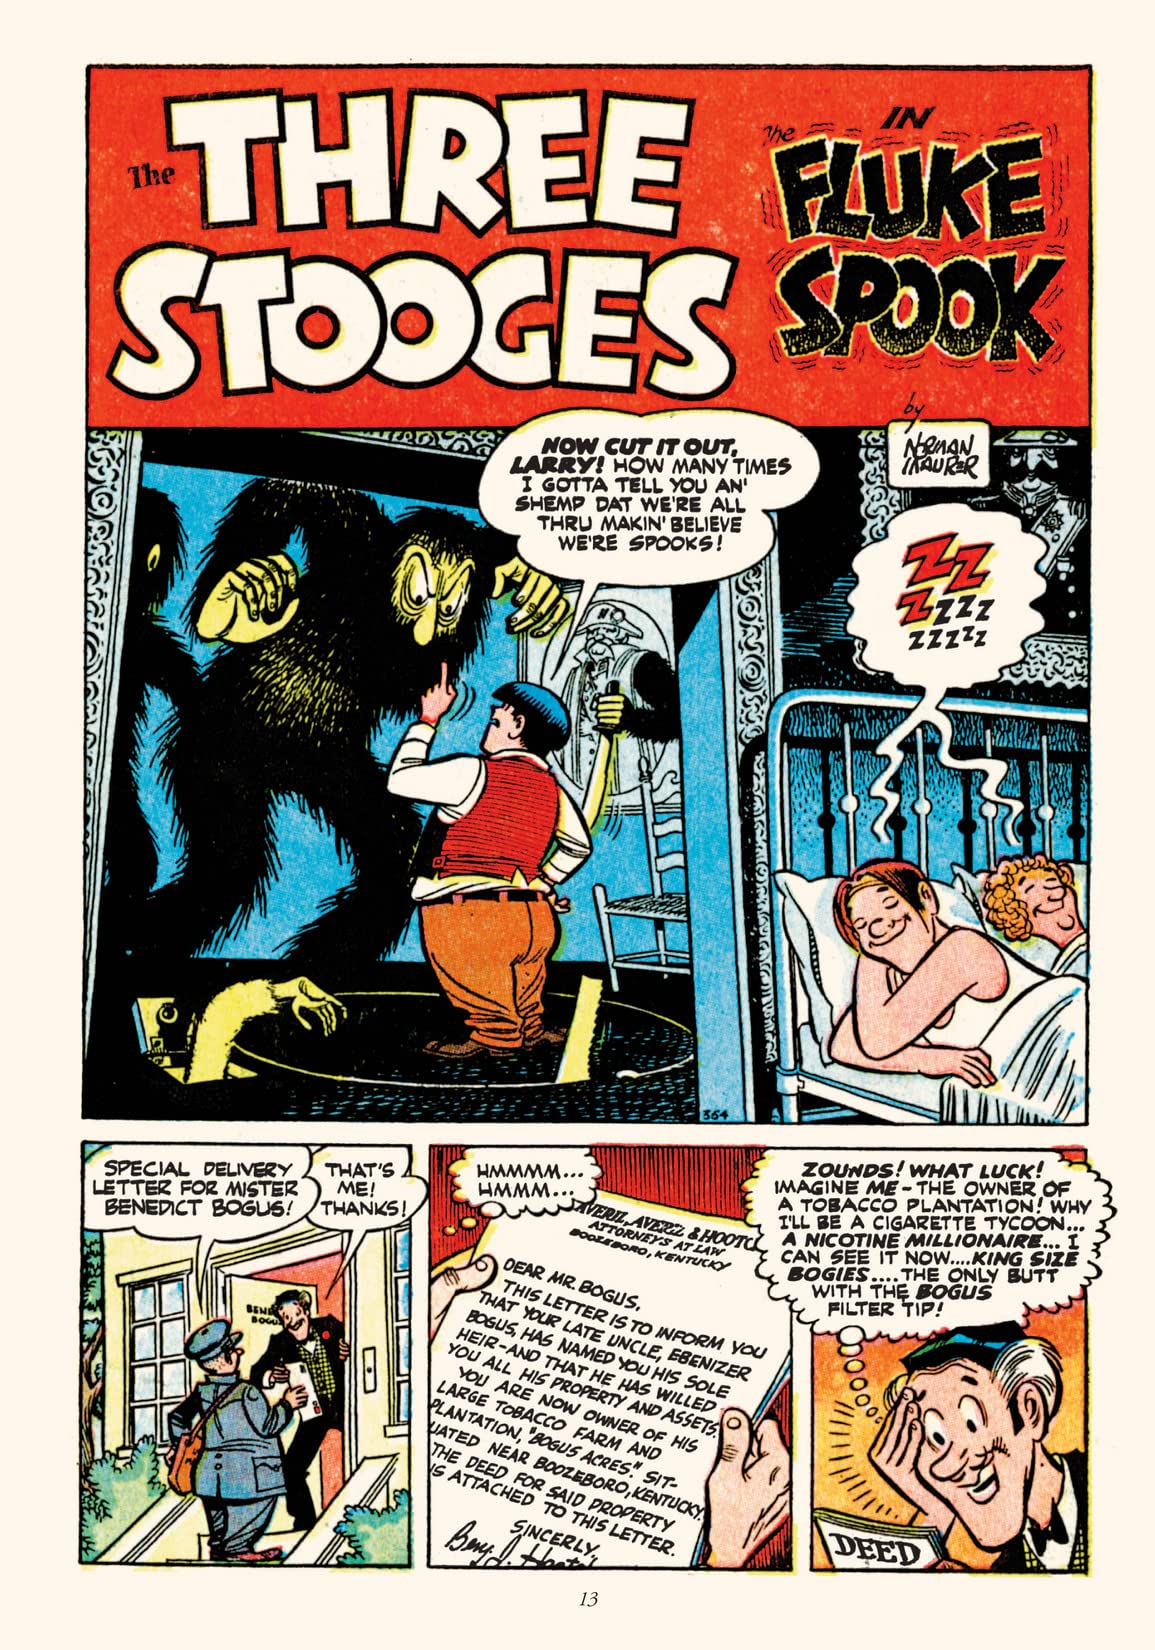 Best of the Three Stooges Vol. 2: Preview